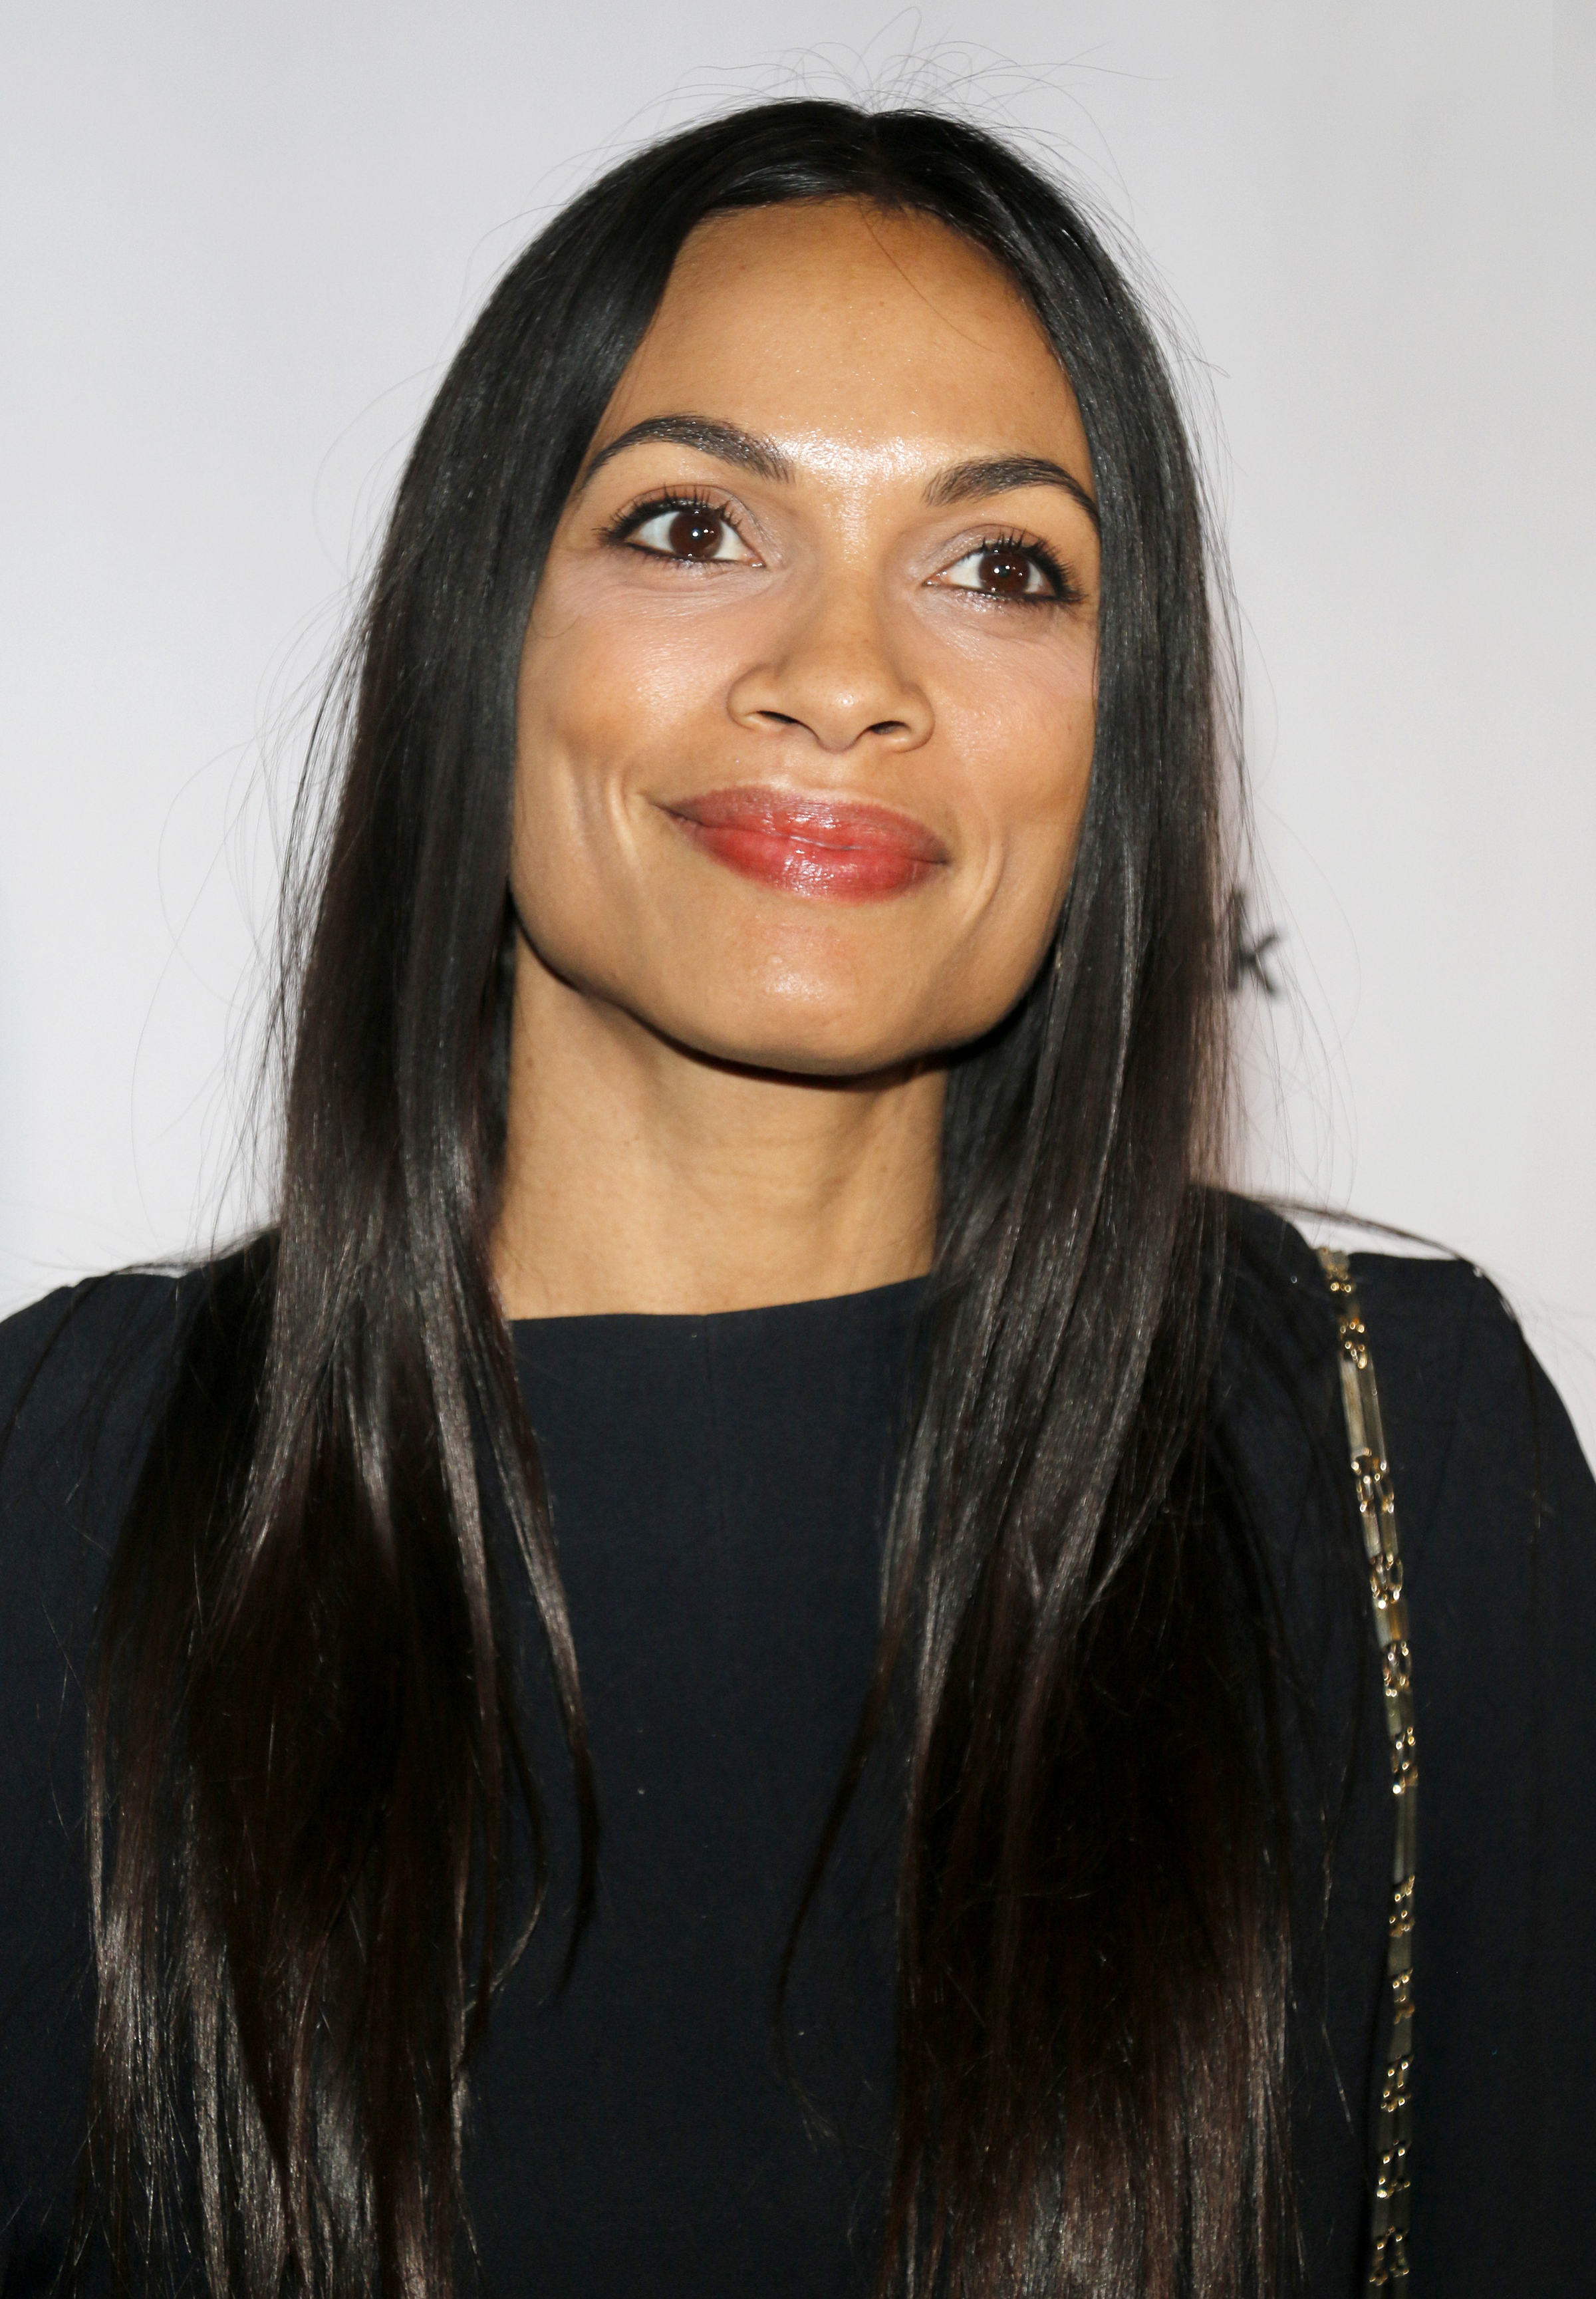 Rosario Dawson 'Comes Out' As Bisexual, Admits She's 'Never Had A LGBTQ Relationship'